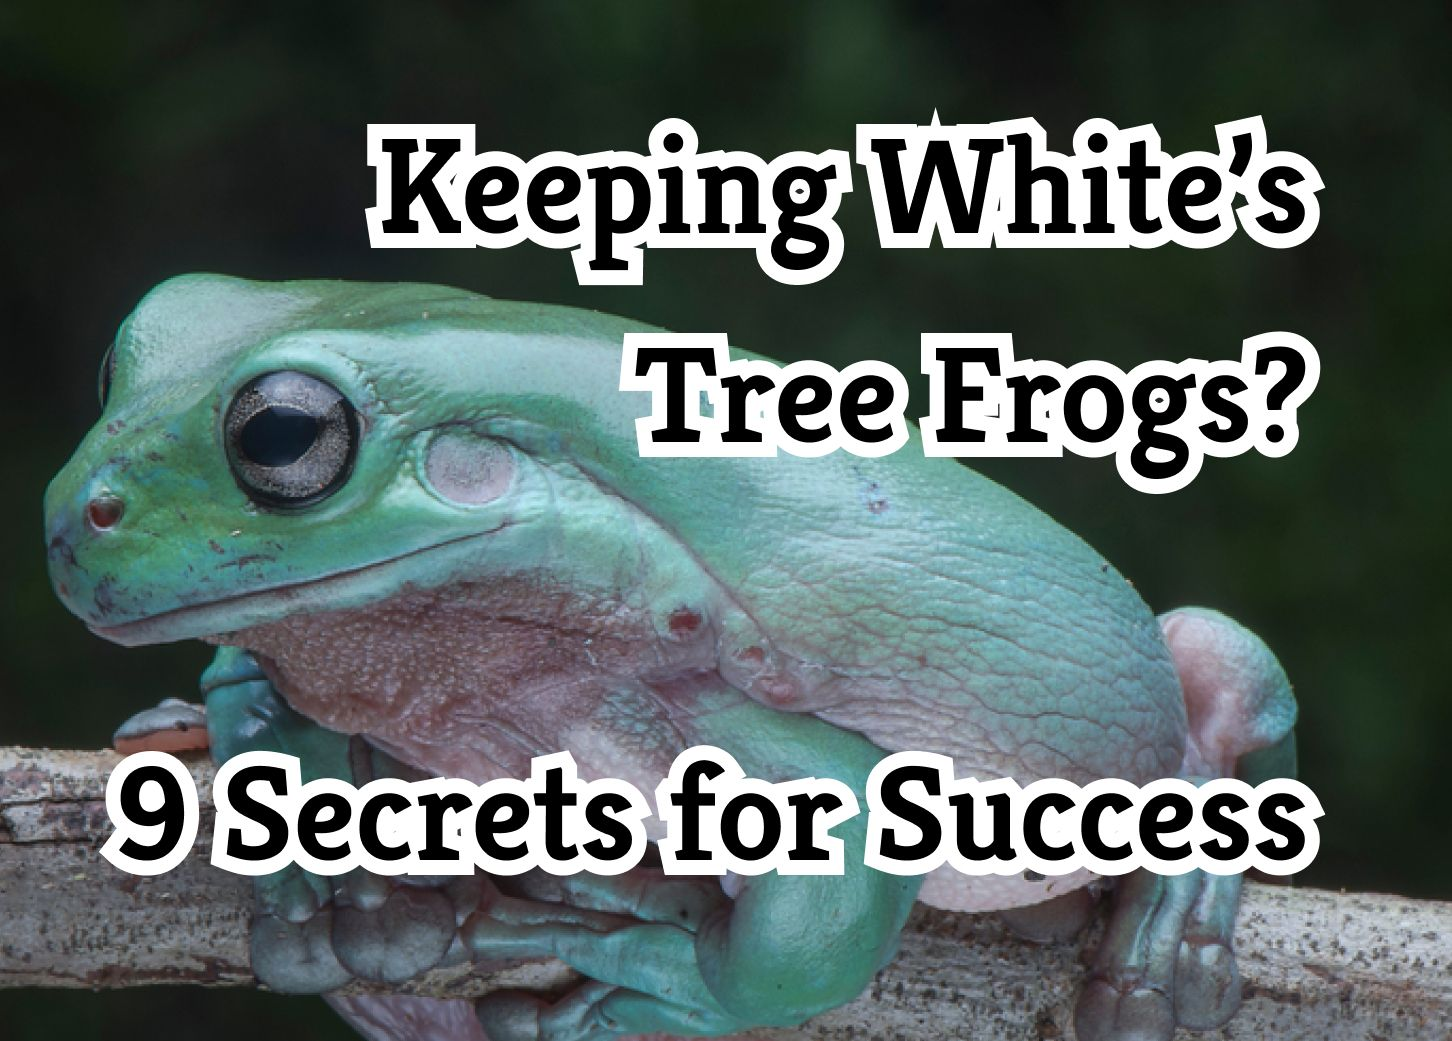 Keeping White's Tree Frogs? 9 Secrets for Success